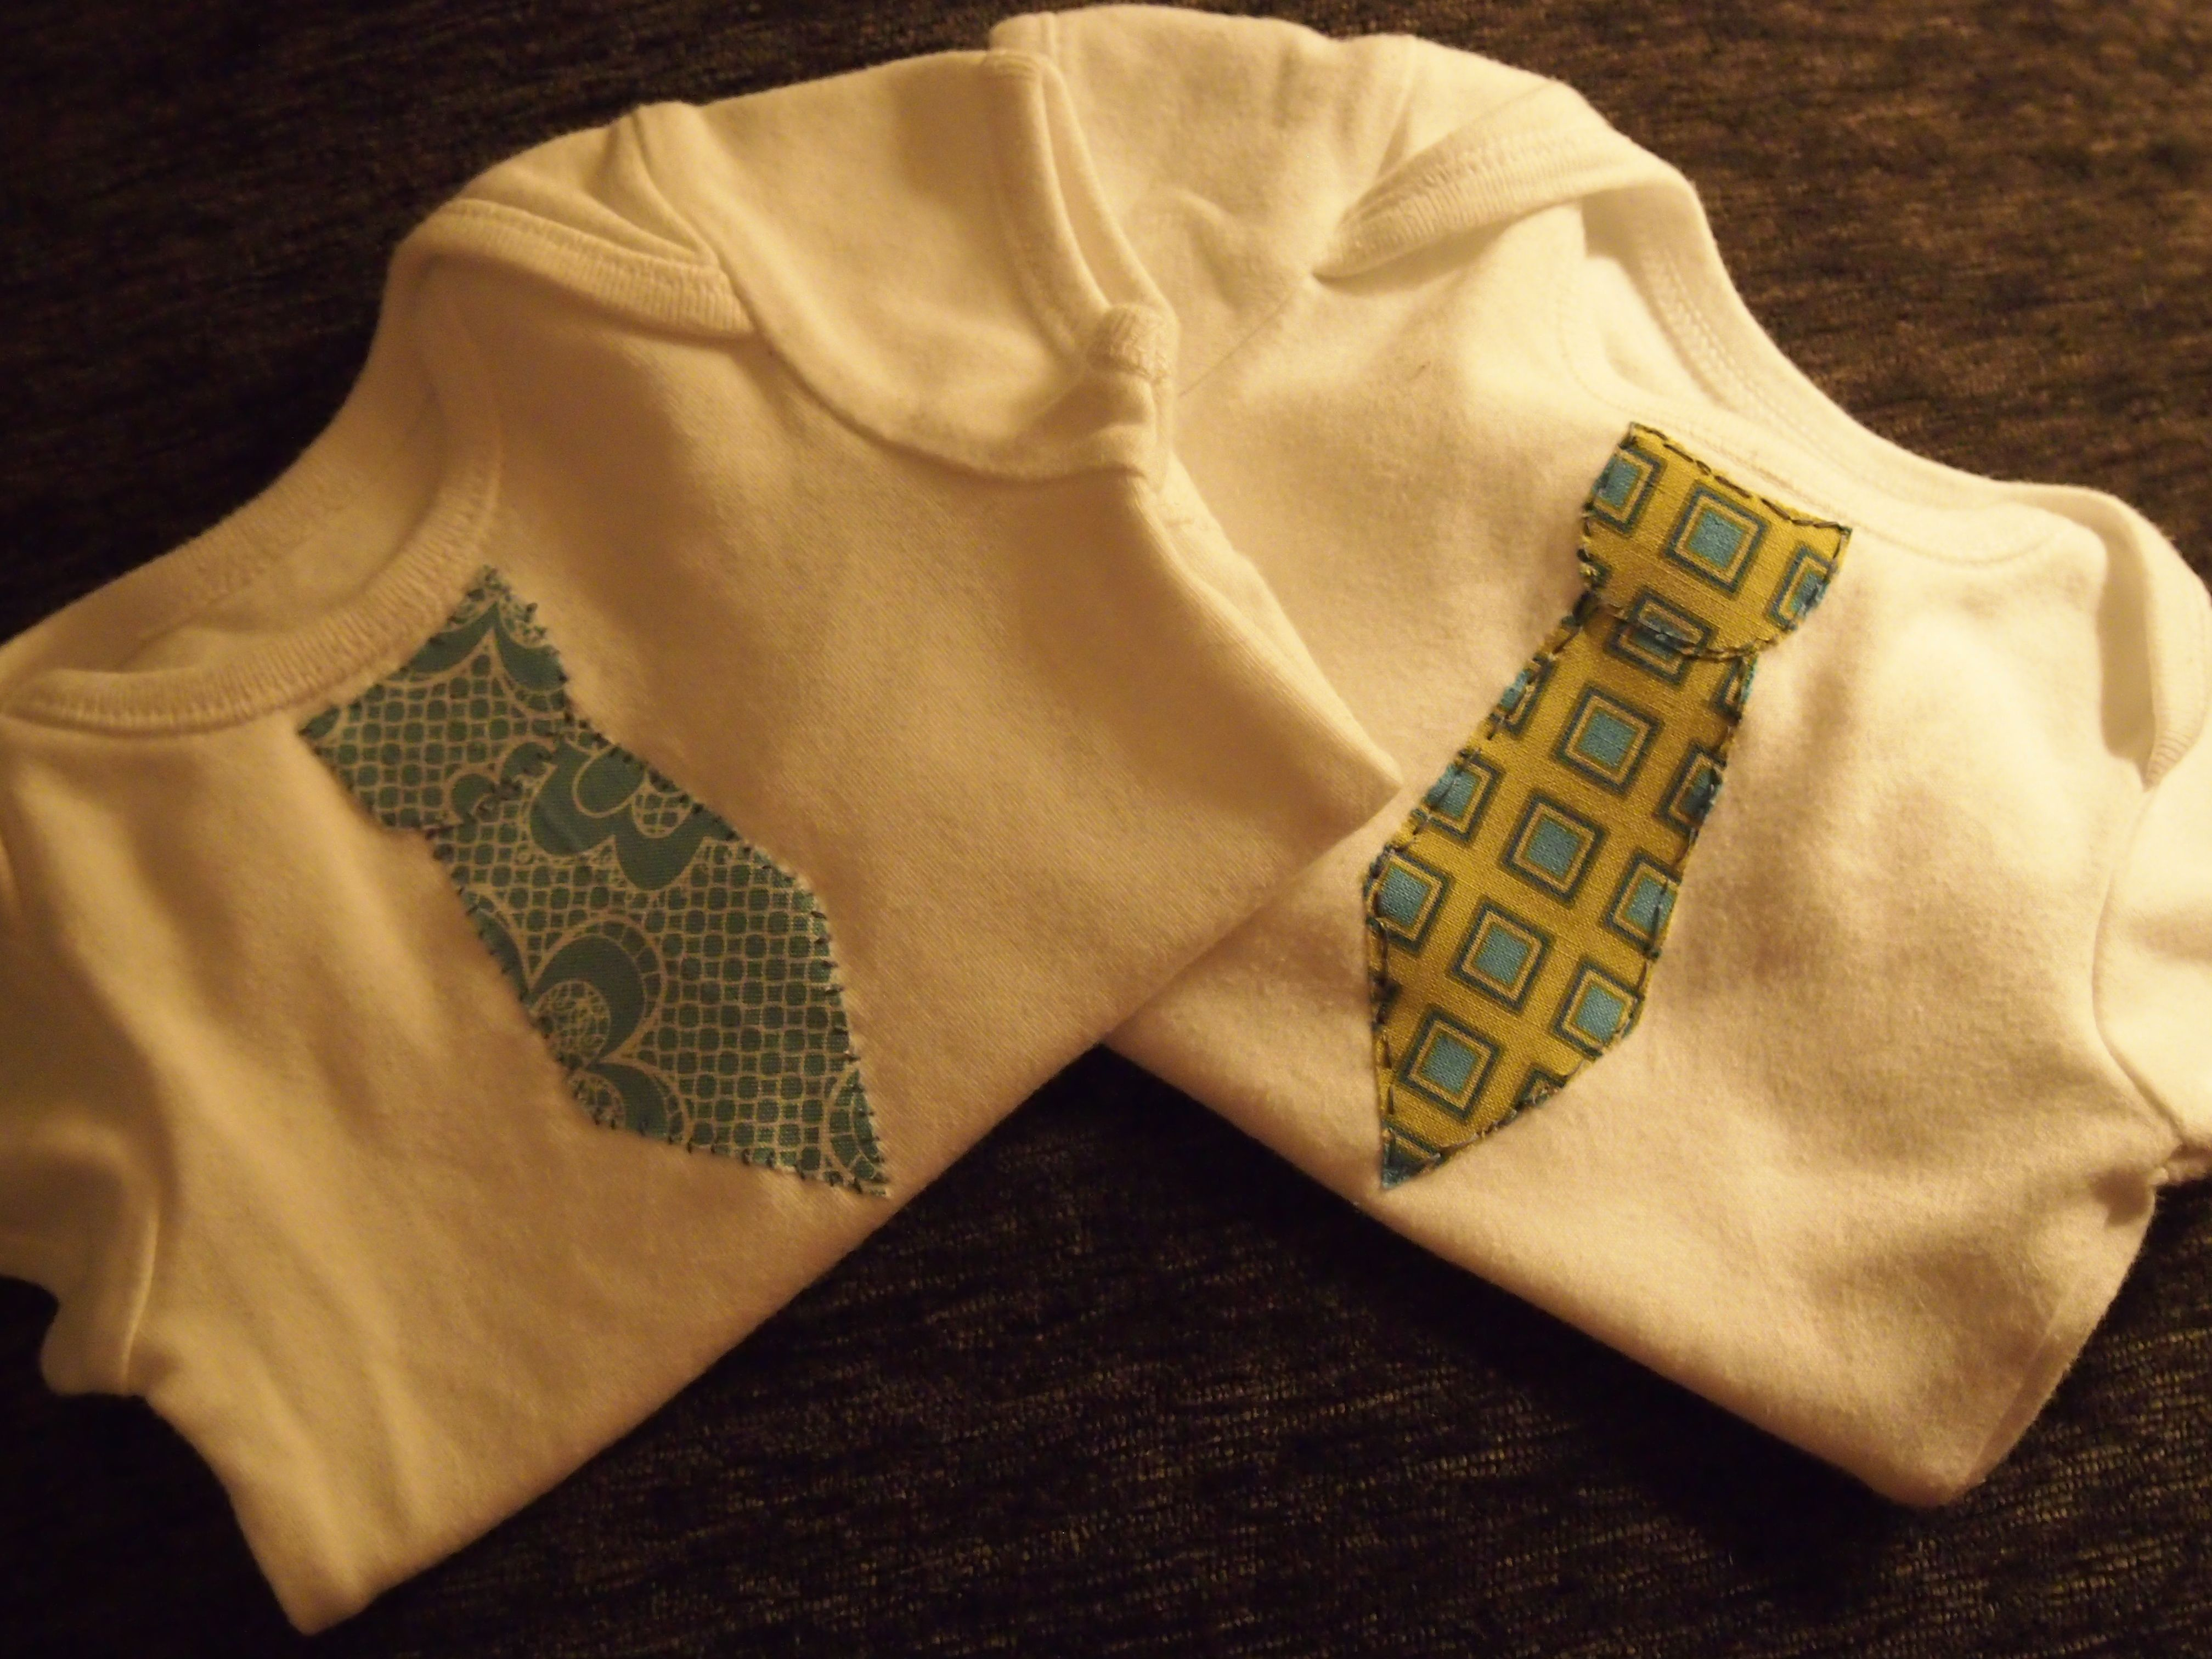 Custom diy baby boy tie onesies very easy to do just use iron on custom diy baby boy tie onesies very easy to do just use iron on applique i used the no sew though i still sewed the edges to ensure there was no ccuart Image collections